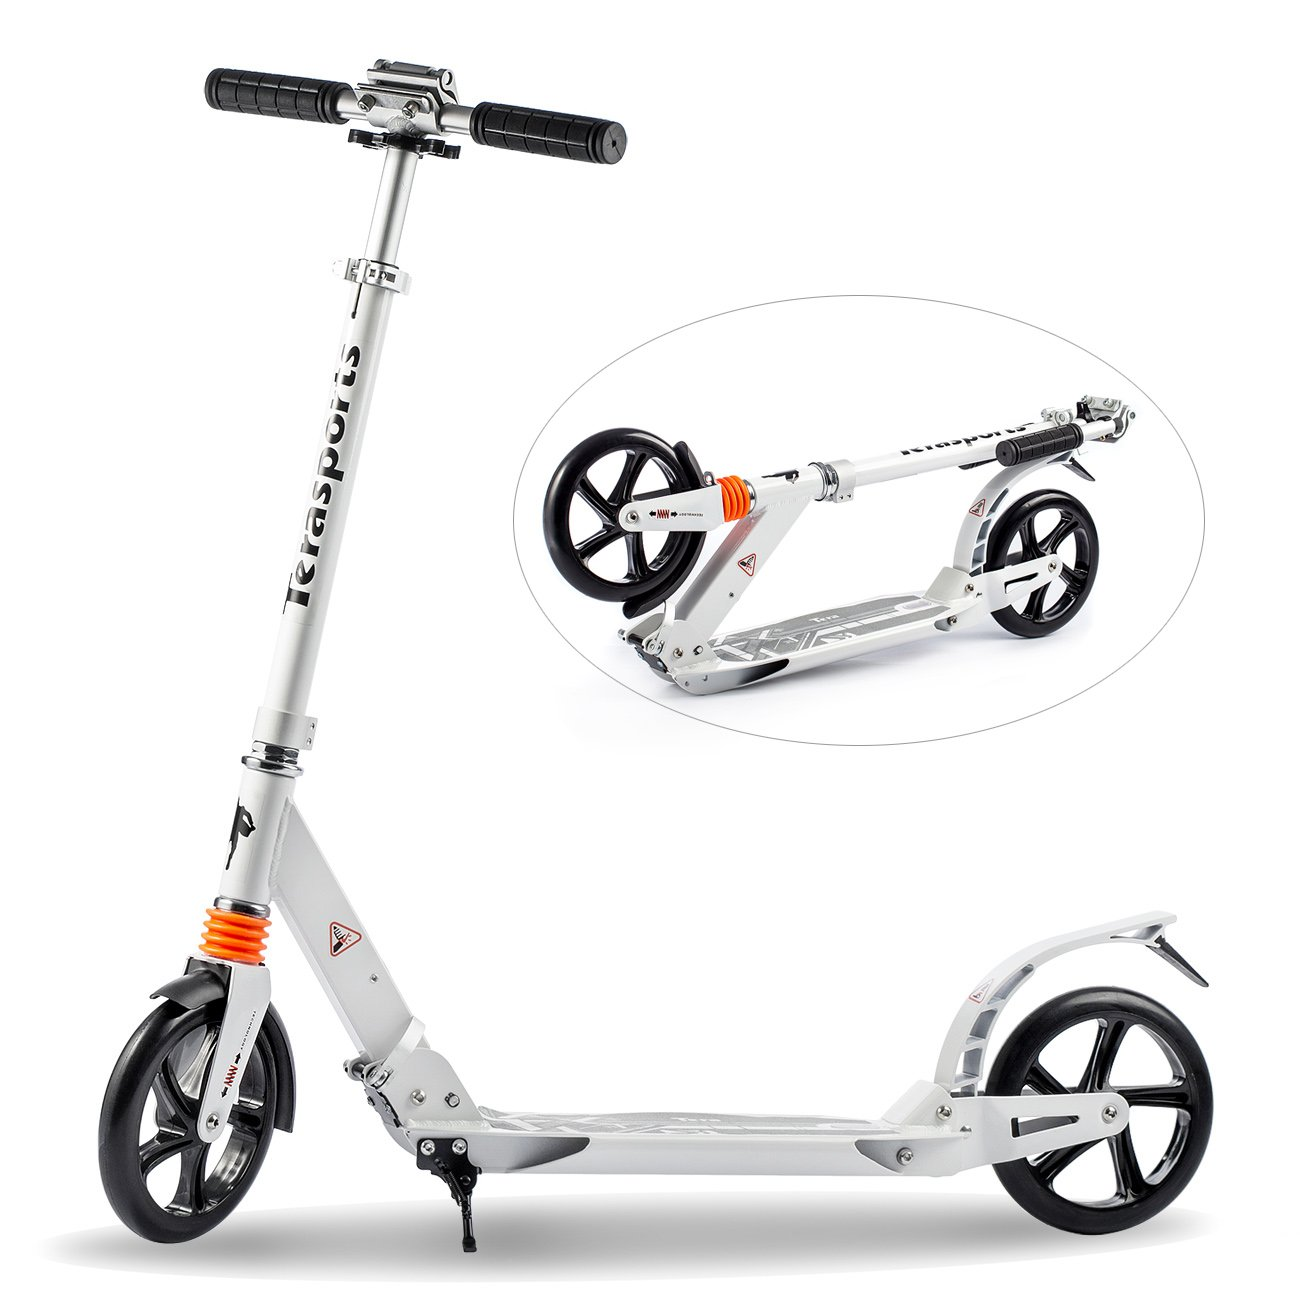 Tera Foldable Scooter City Plearsurable Bike 2-Wheel Roller 20cm Wheel-Diameter with Maximum Load 100kg Height Adjustable for Children Adult White Color